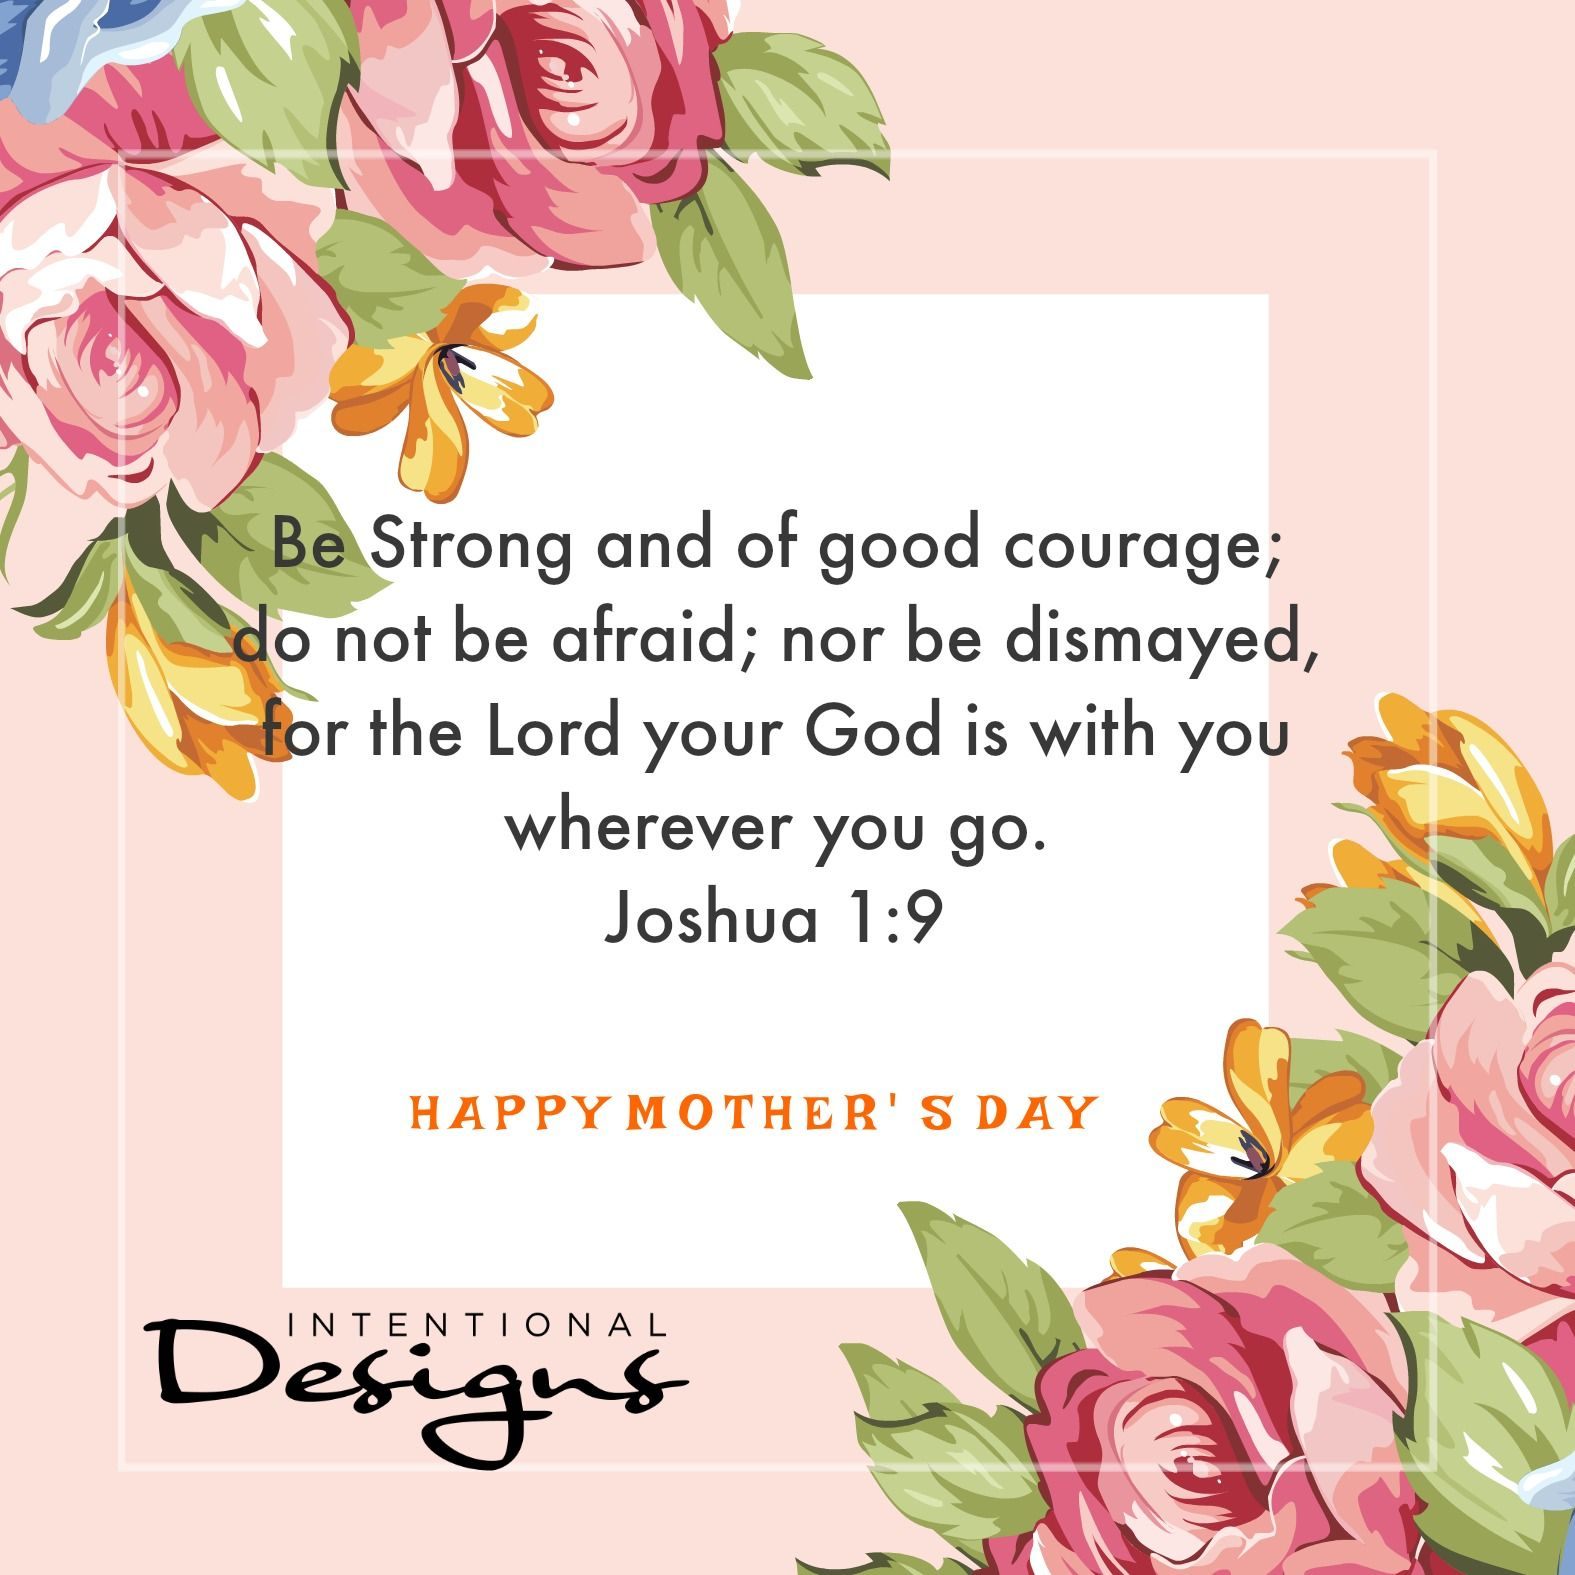 May 11 Friday Fun Decorating Links Mothers Day Weekend Inspirational Scripture Happy Mothers Day